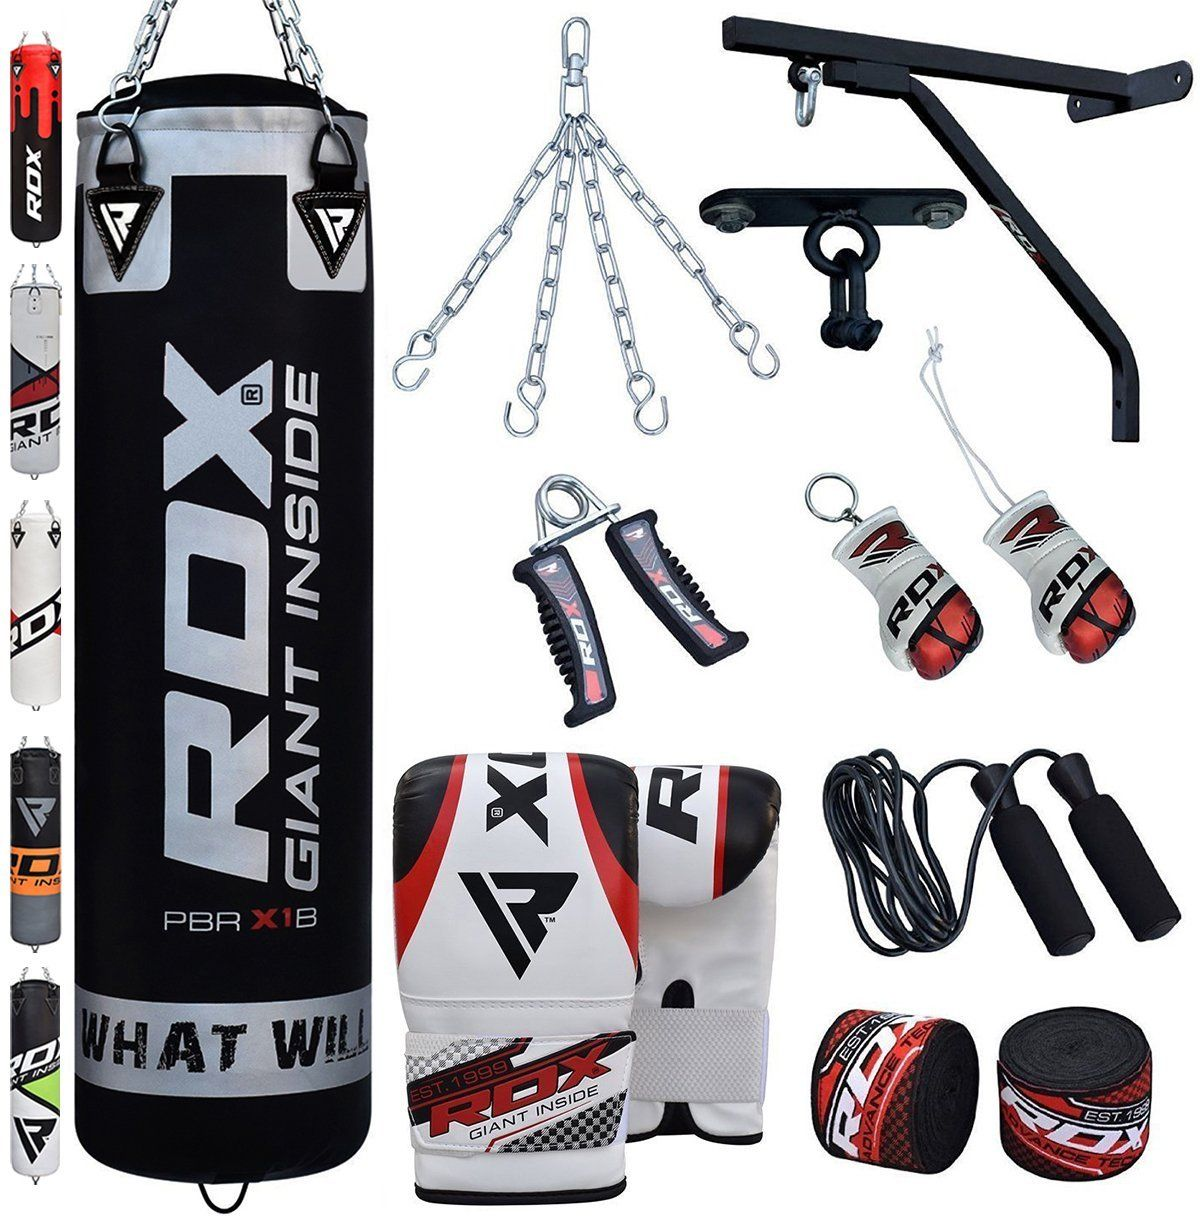 RDX Women Punch Bag Filled Set Pink Ladies Kick Boxing Heavy MMA Training Gloves Punching Mitts Hanging Chain Muay Thai Martial Arts 4FT